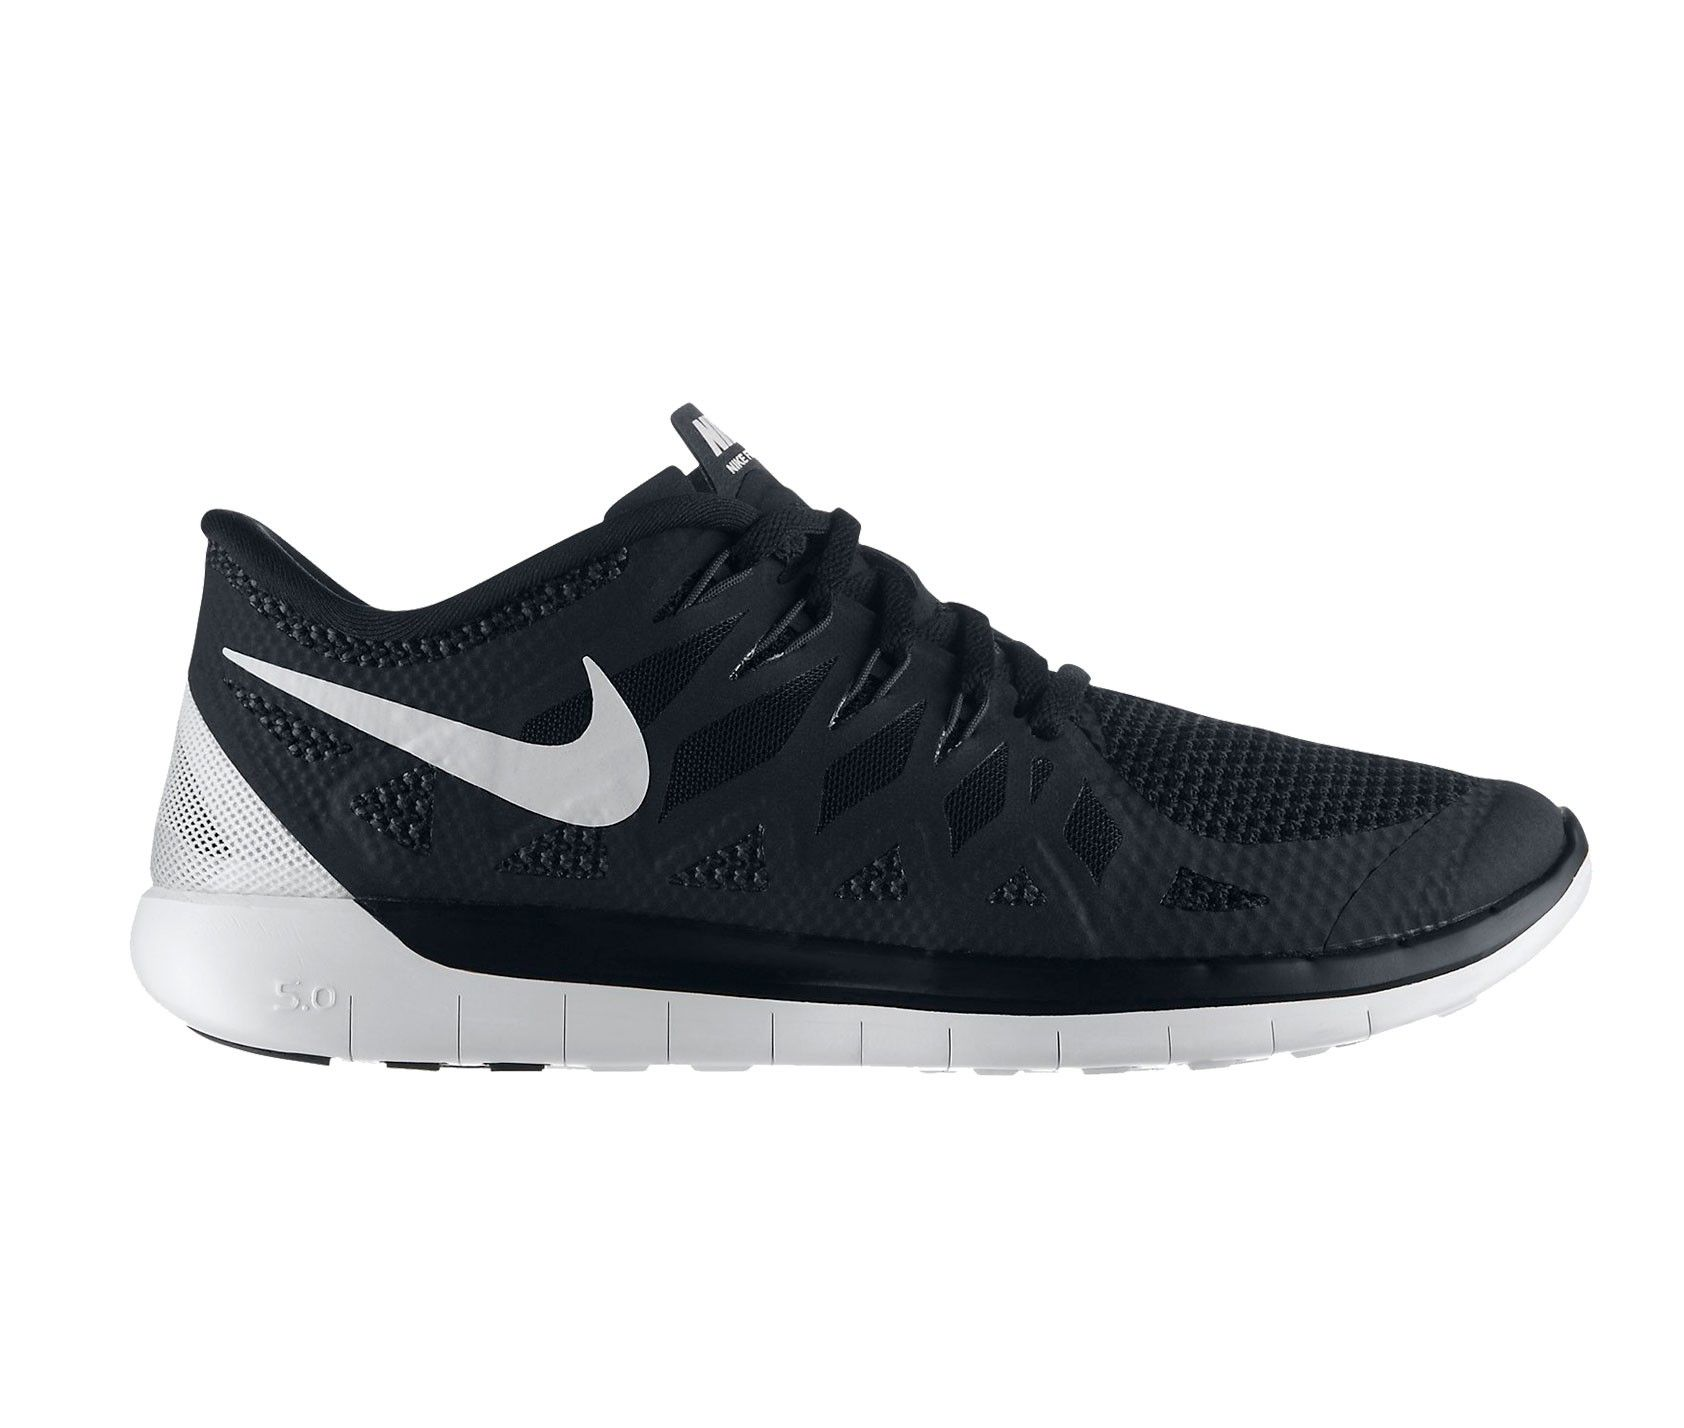 hot sale online 740e7 17c31 NIKE FREE 5.0 NEGROBLANCO MUJER